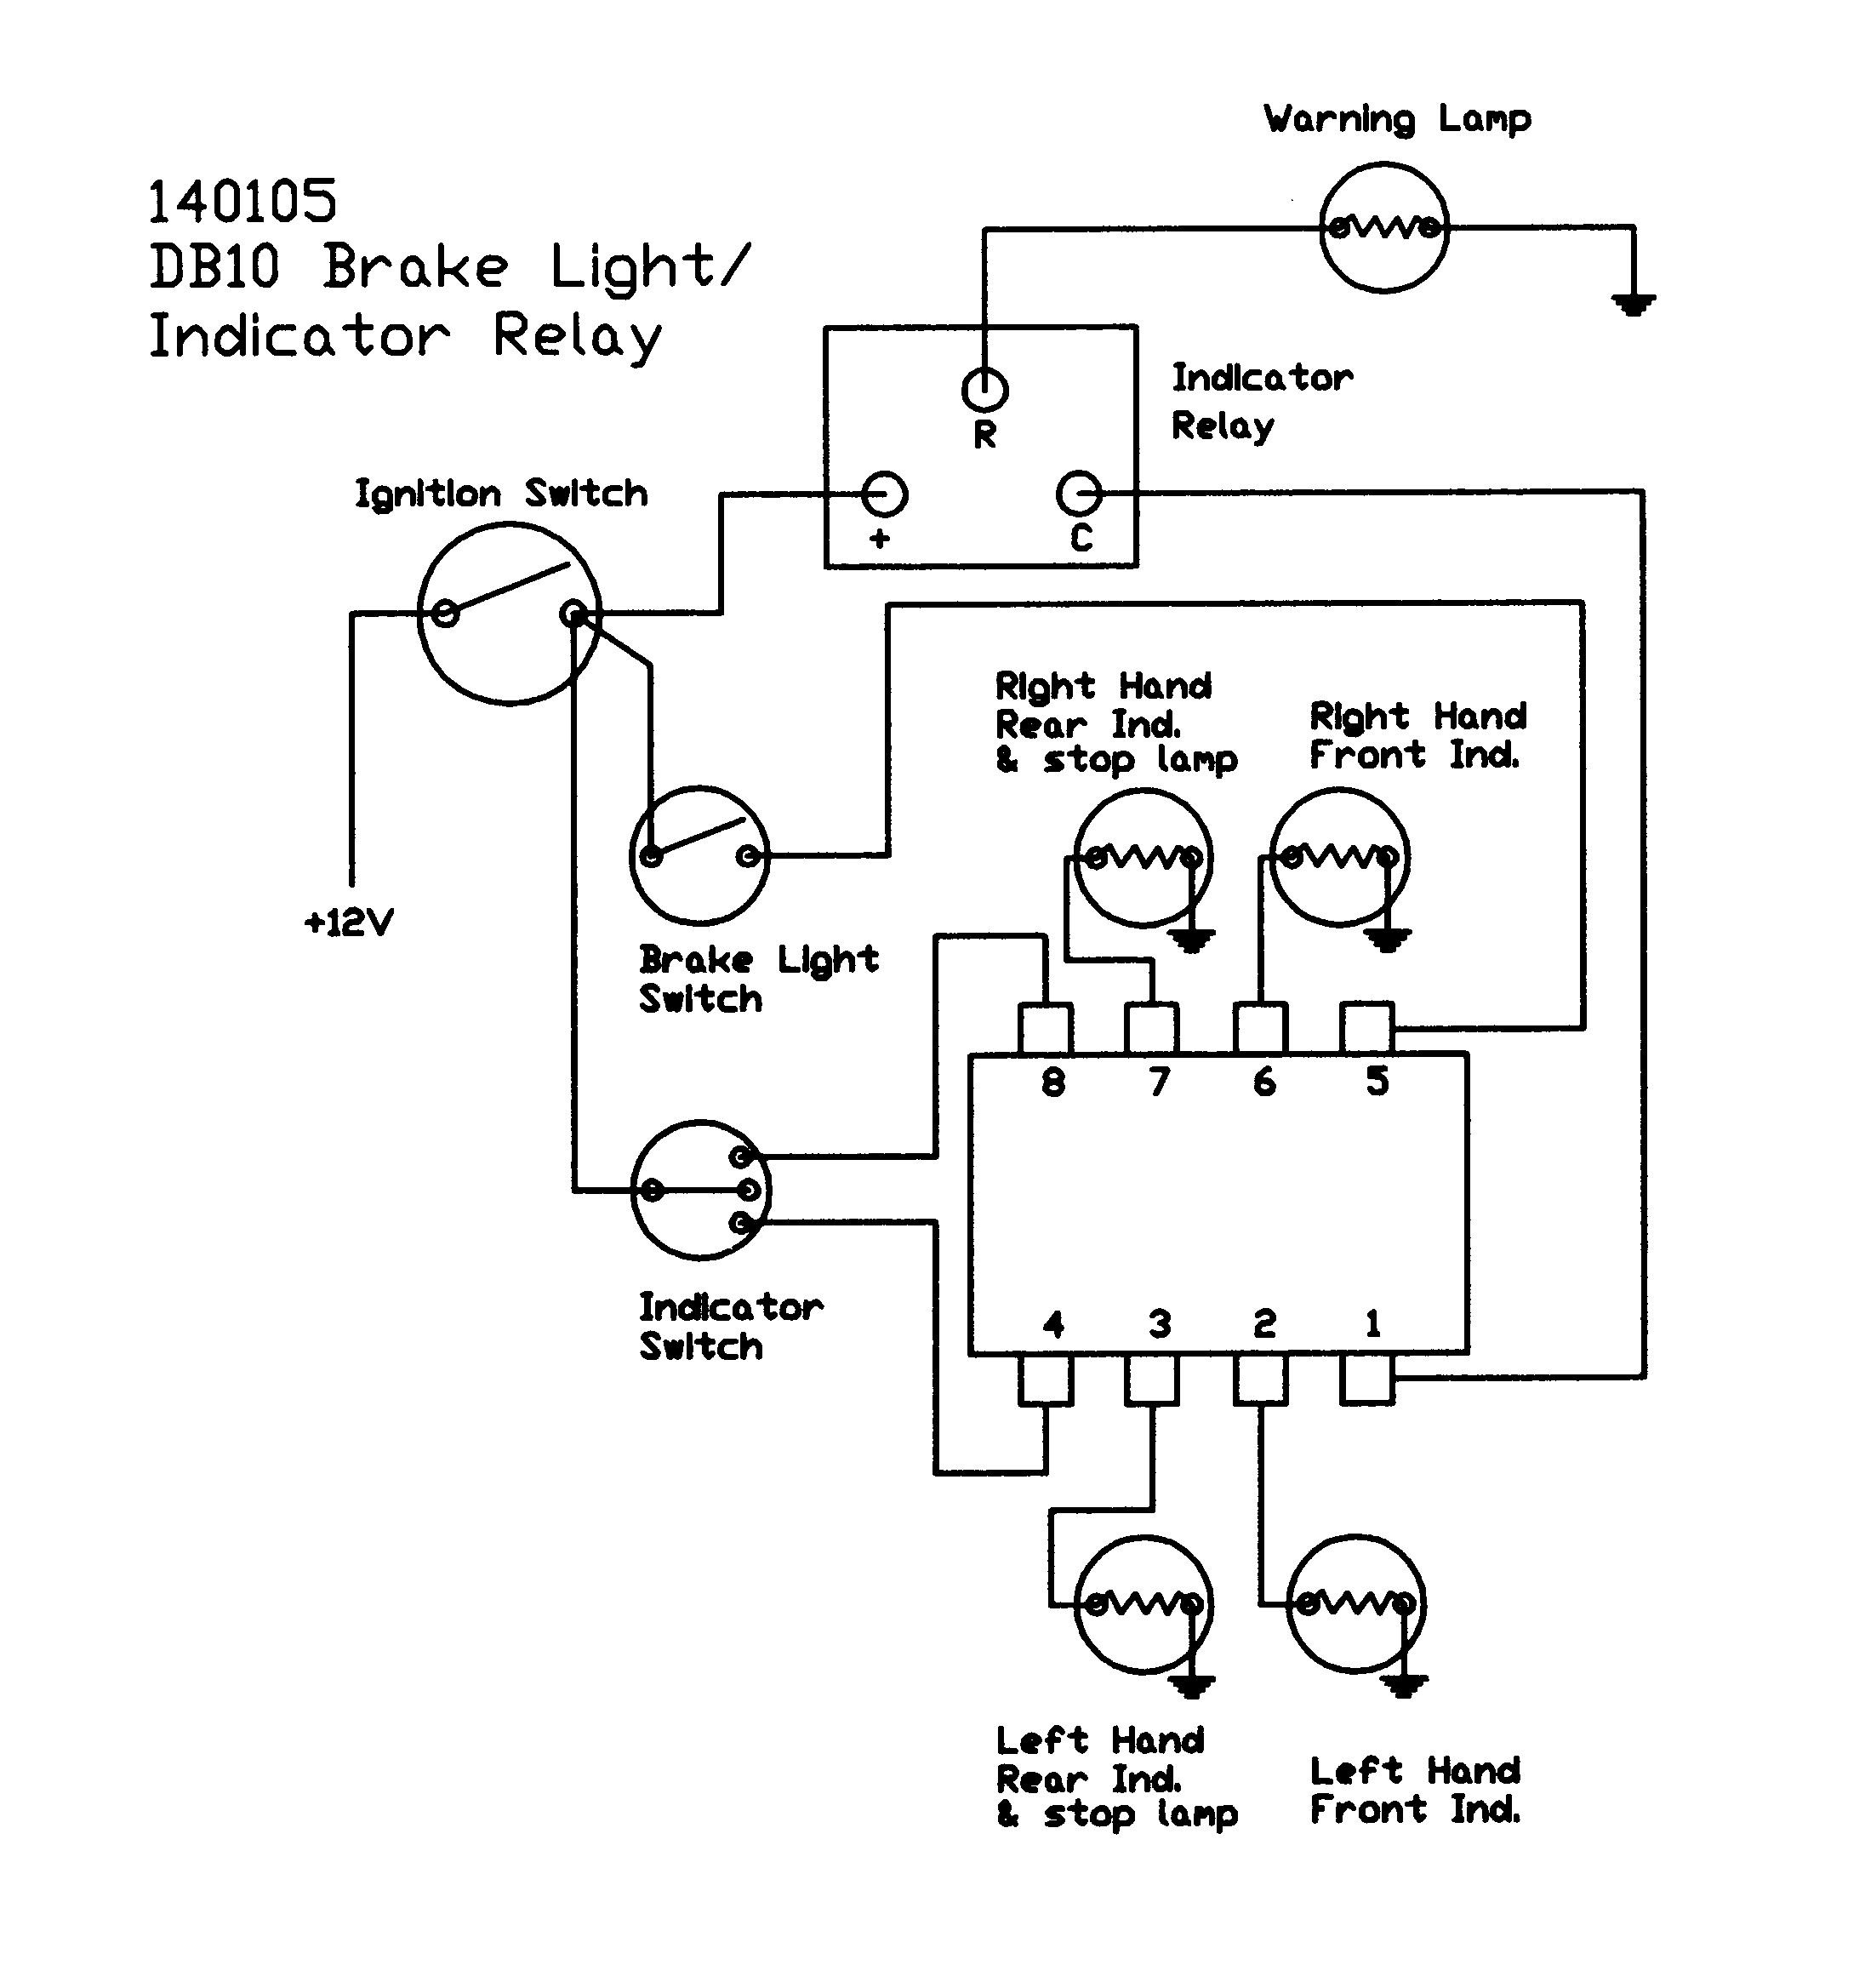 1950s Light Switch Wiring Diagram Trusted Direction Indicator Mystery On Roadsters Web Forum For Singer Cars Basic Electrical Diagrams